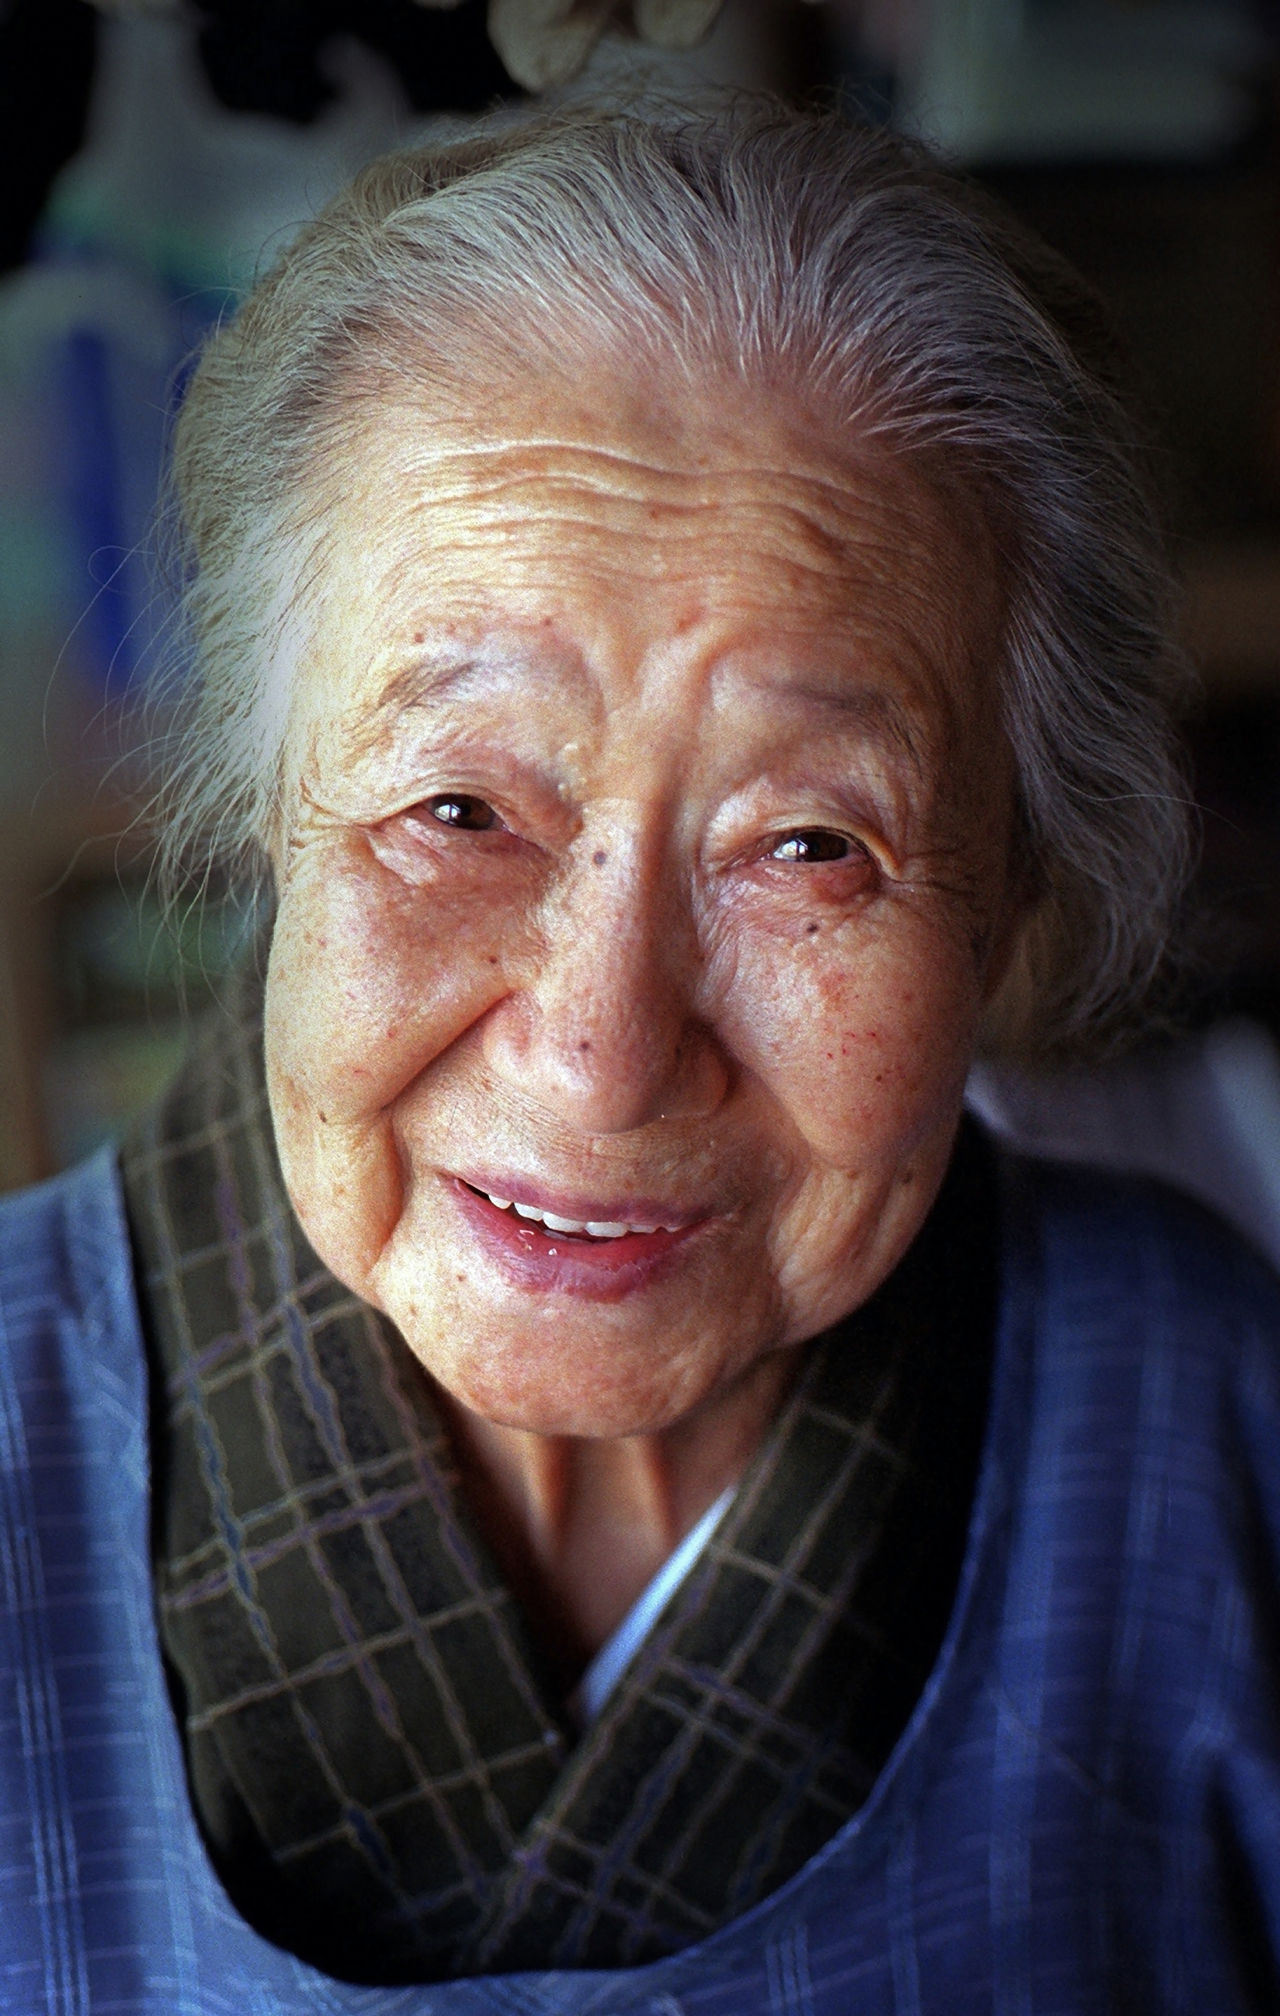 My 93-year-old grandmother taken in the early 2000's. At Peace Contemplation Elderly Front View Grandmother Great Grandmother Happy Happy People Head And Shoulders Headshot Human Face Looking At Camera Person Portrait Real People Senior Citizen  Smiling Wise Things I Like Ultimate Japan